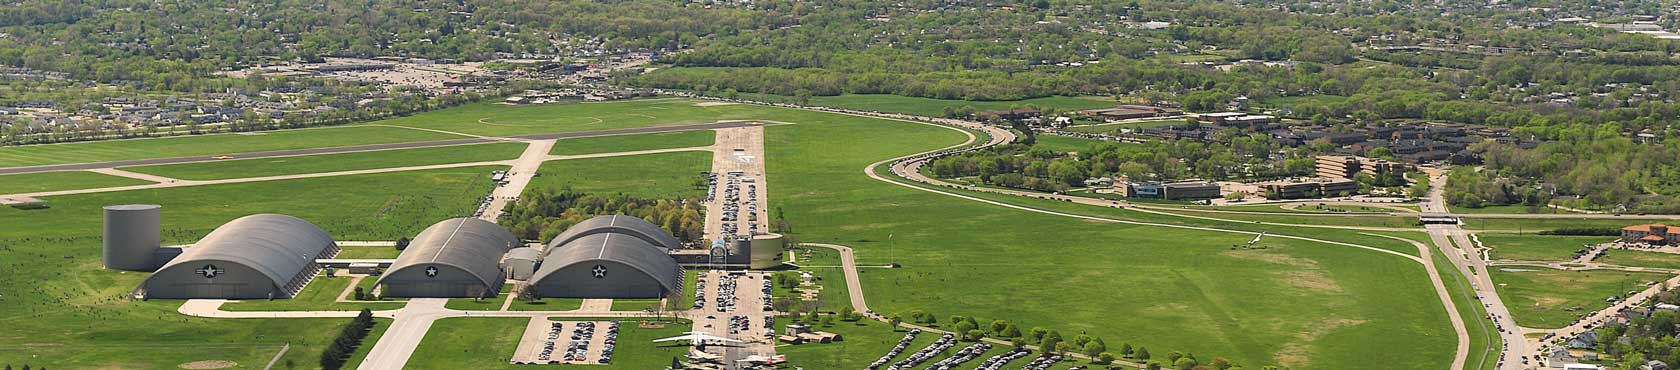 Aerial shot of Wright Patt Air Force Base